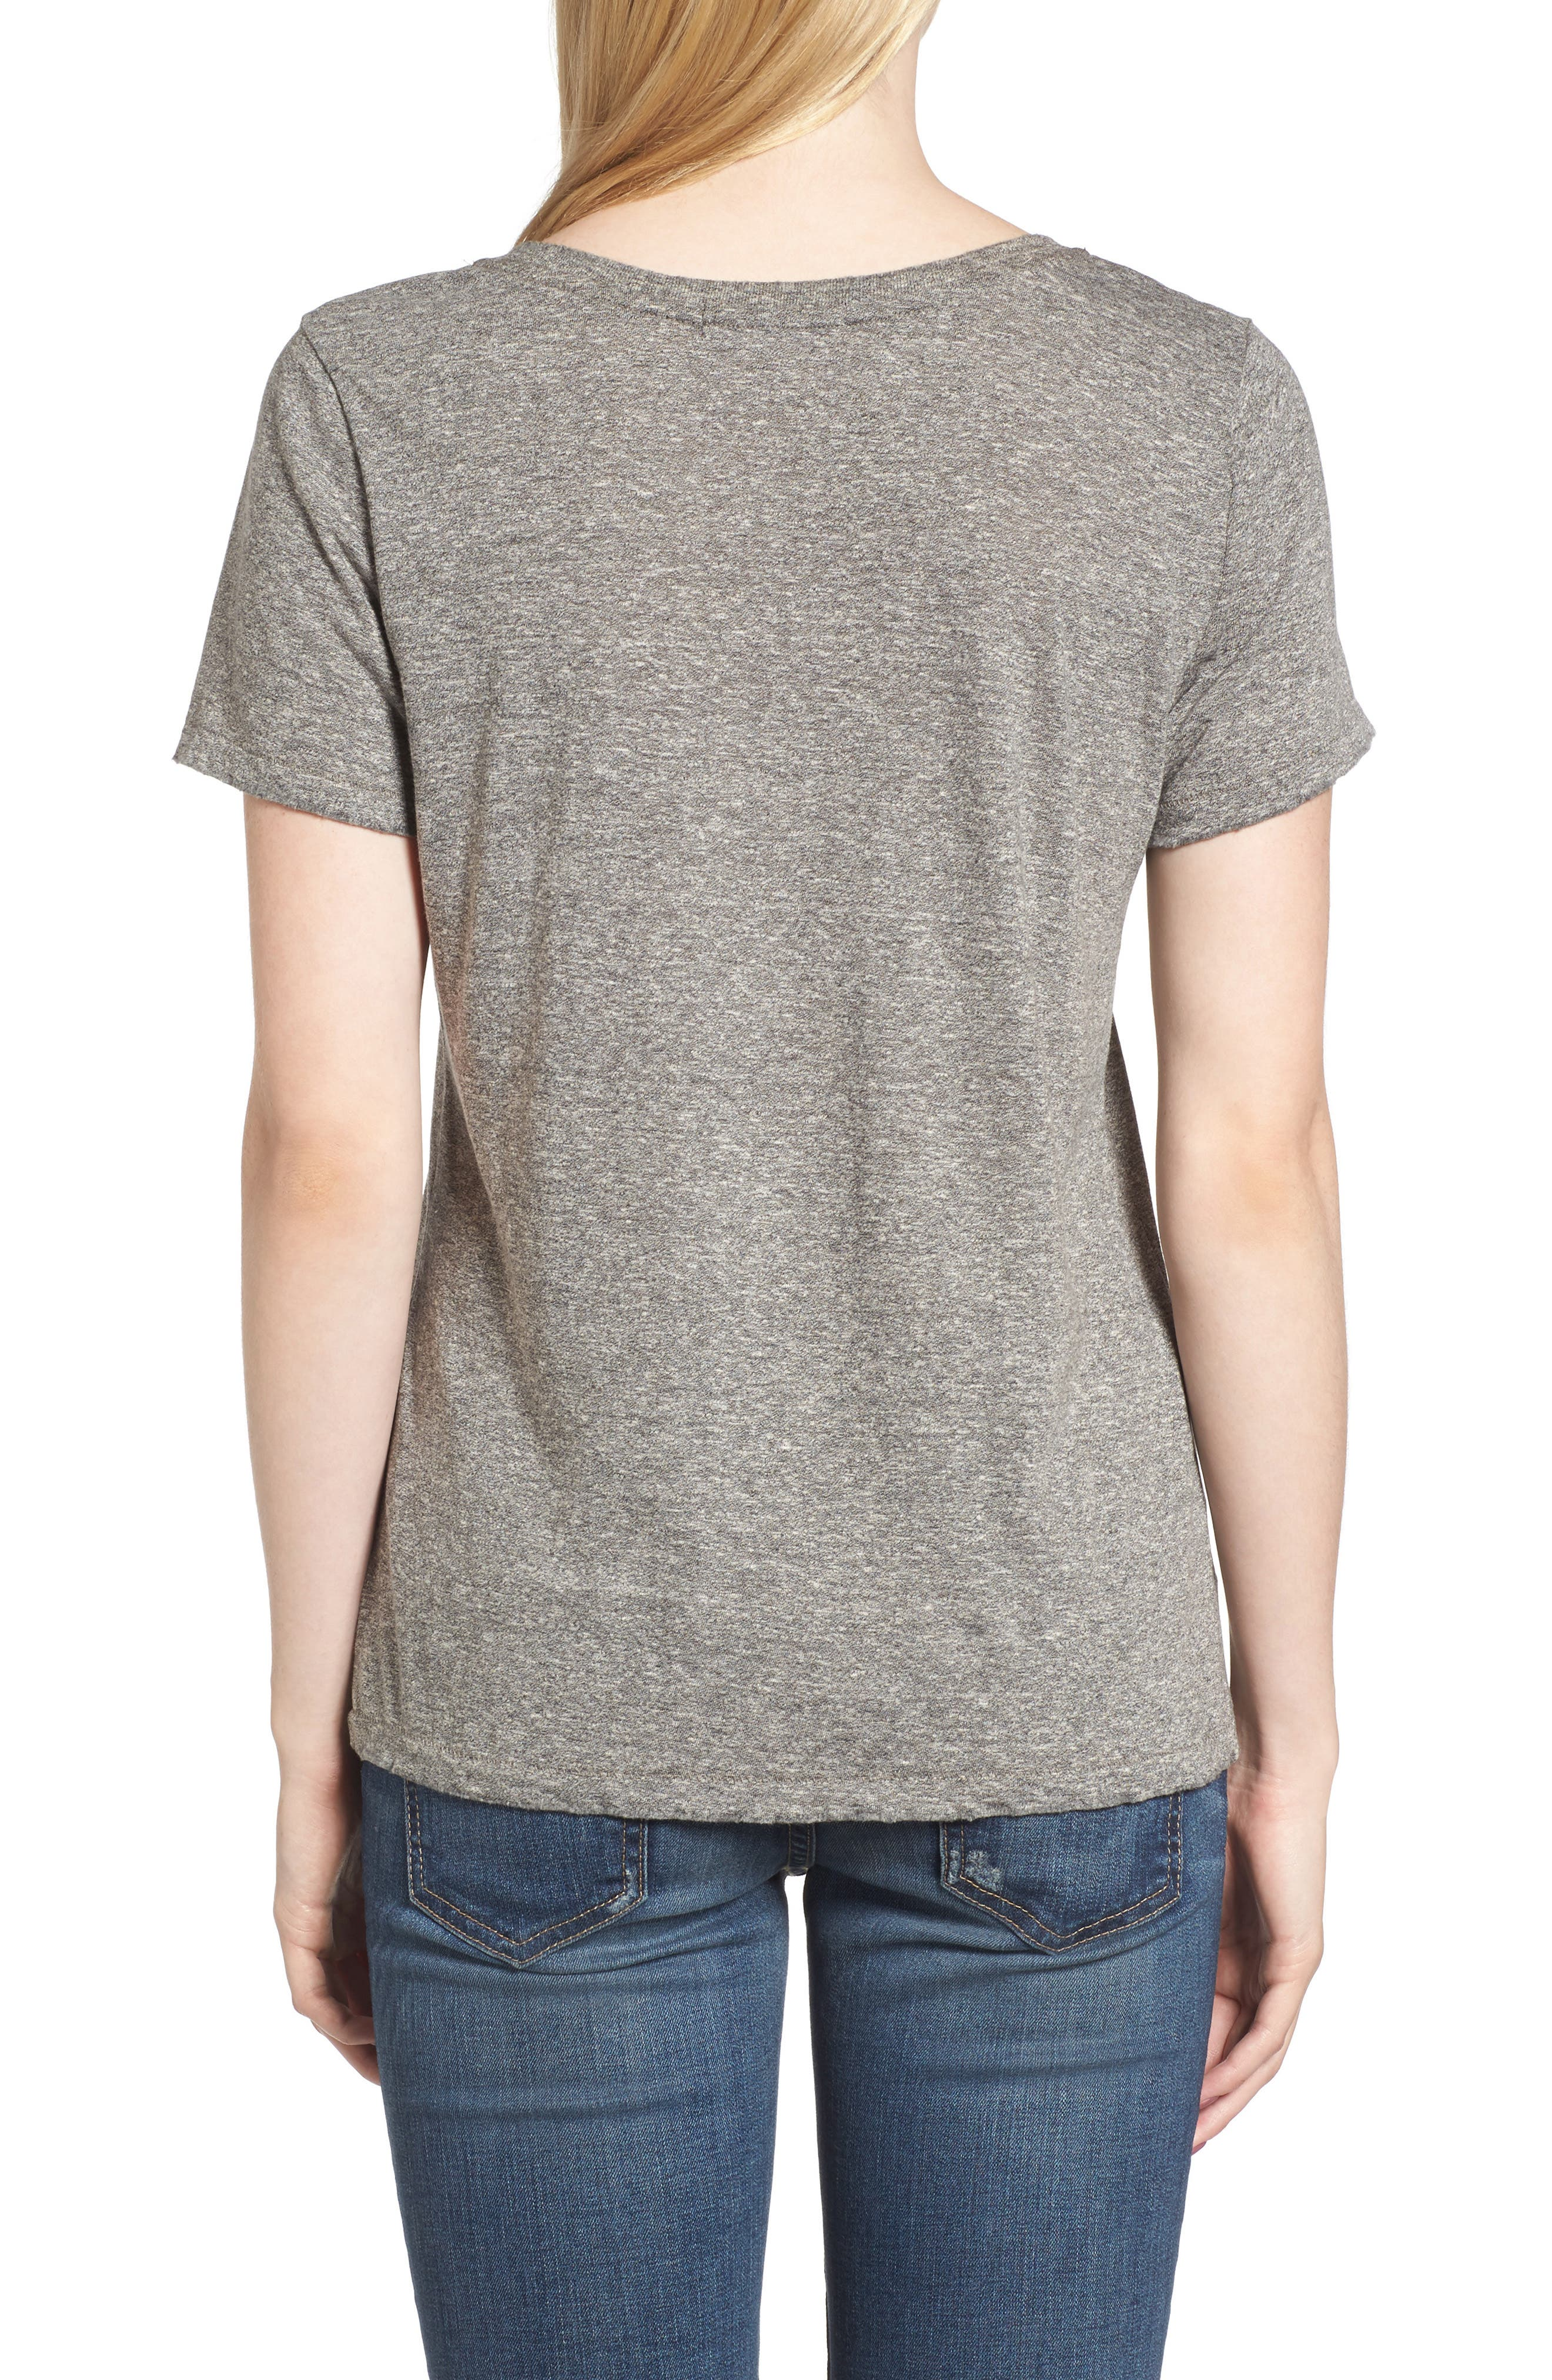 Ringo Distressed Tee,                             Alternate thumbnail 2, color,                             Heather Grey